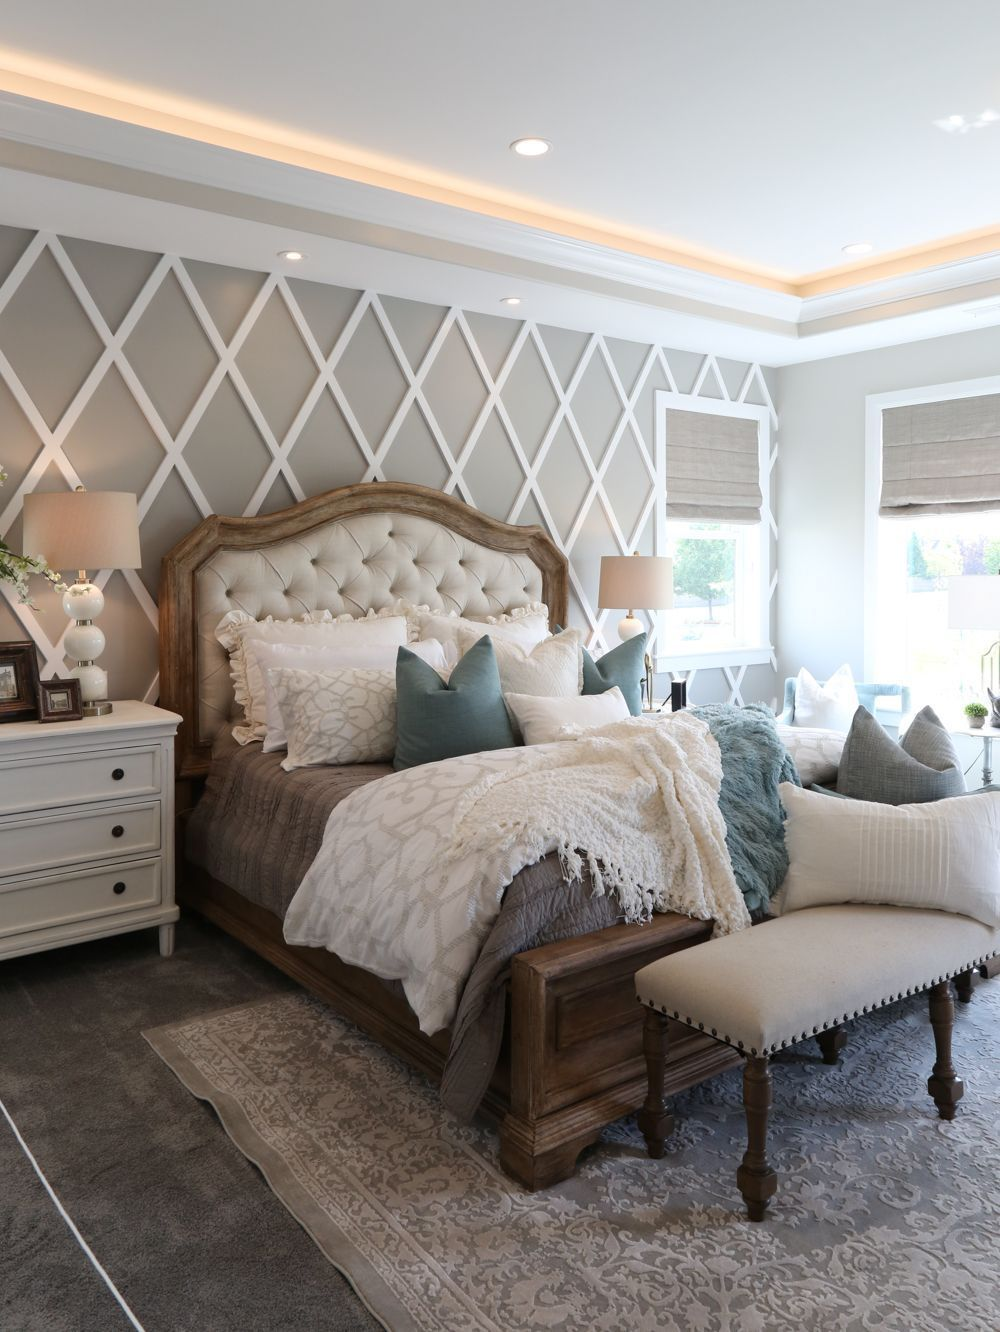 Modern French Country Bedroom Beautifulbedrooms Modern French